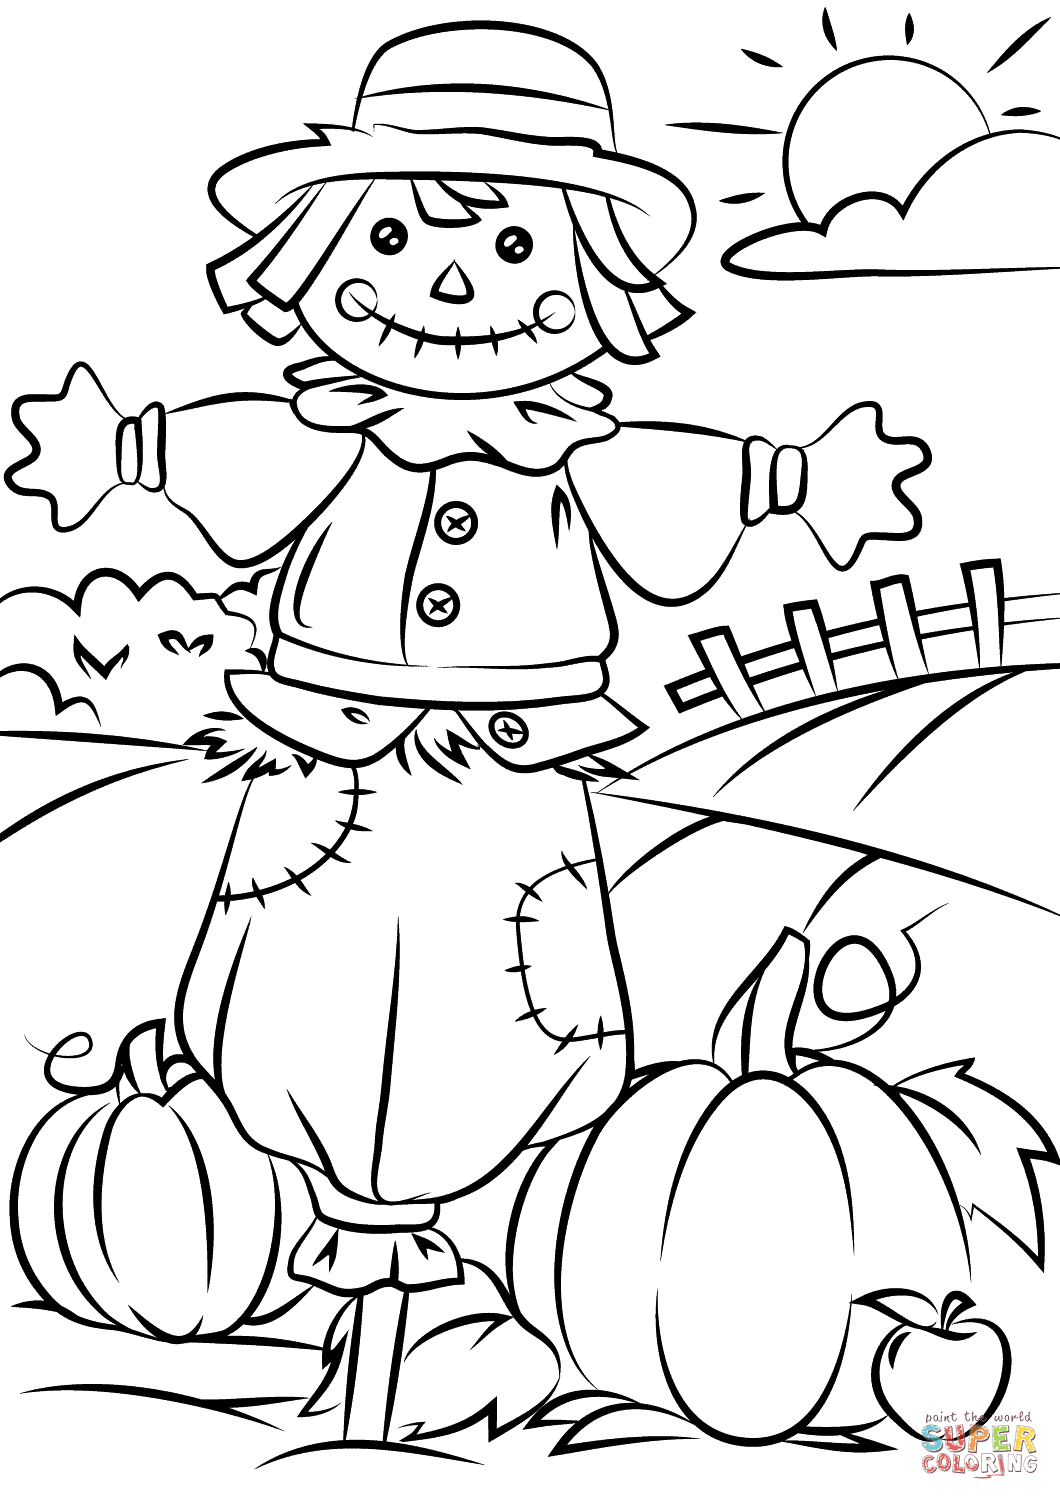 free fall printable coloring pages fall coloring pages disney coloring pages for kids printable coloring fall free pages